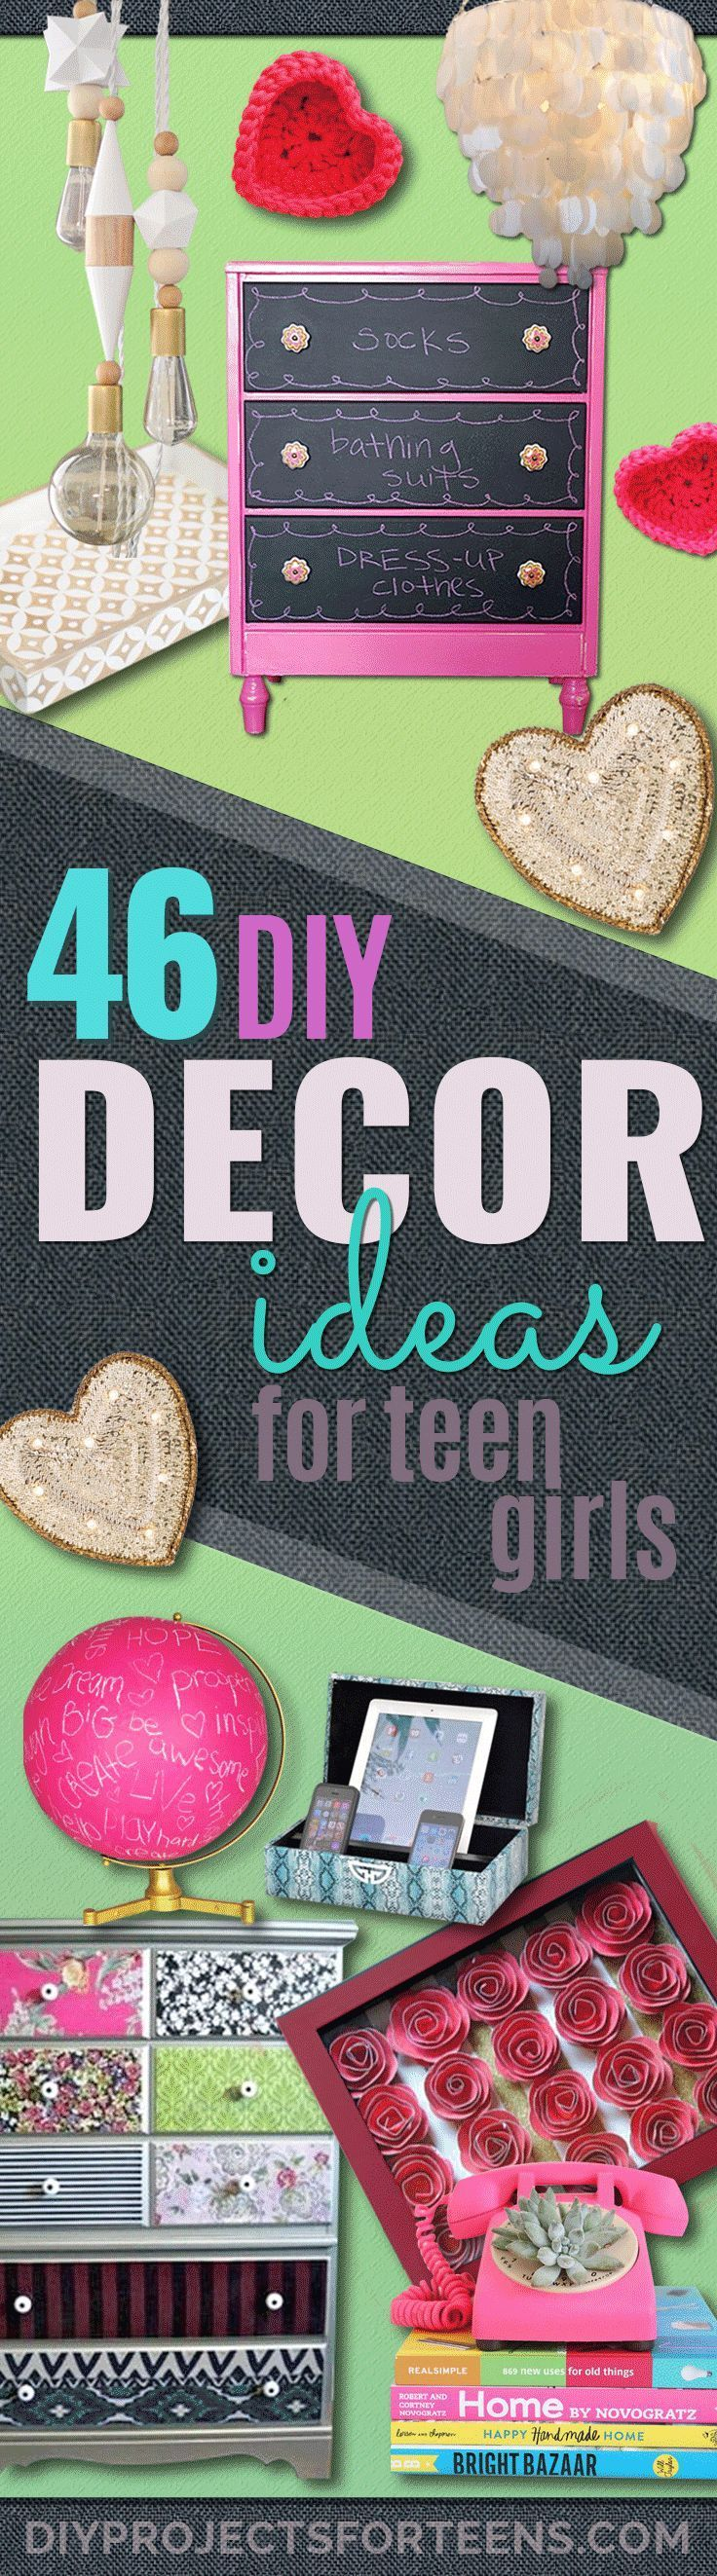 43 most awesome diy decor ideas for teen girls diy teen room decor 43 most awesome diy decor ideas for teen girls solutioingenieria Gallery